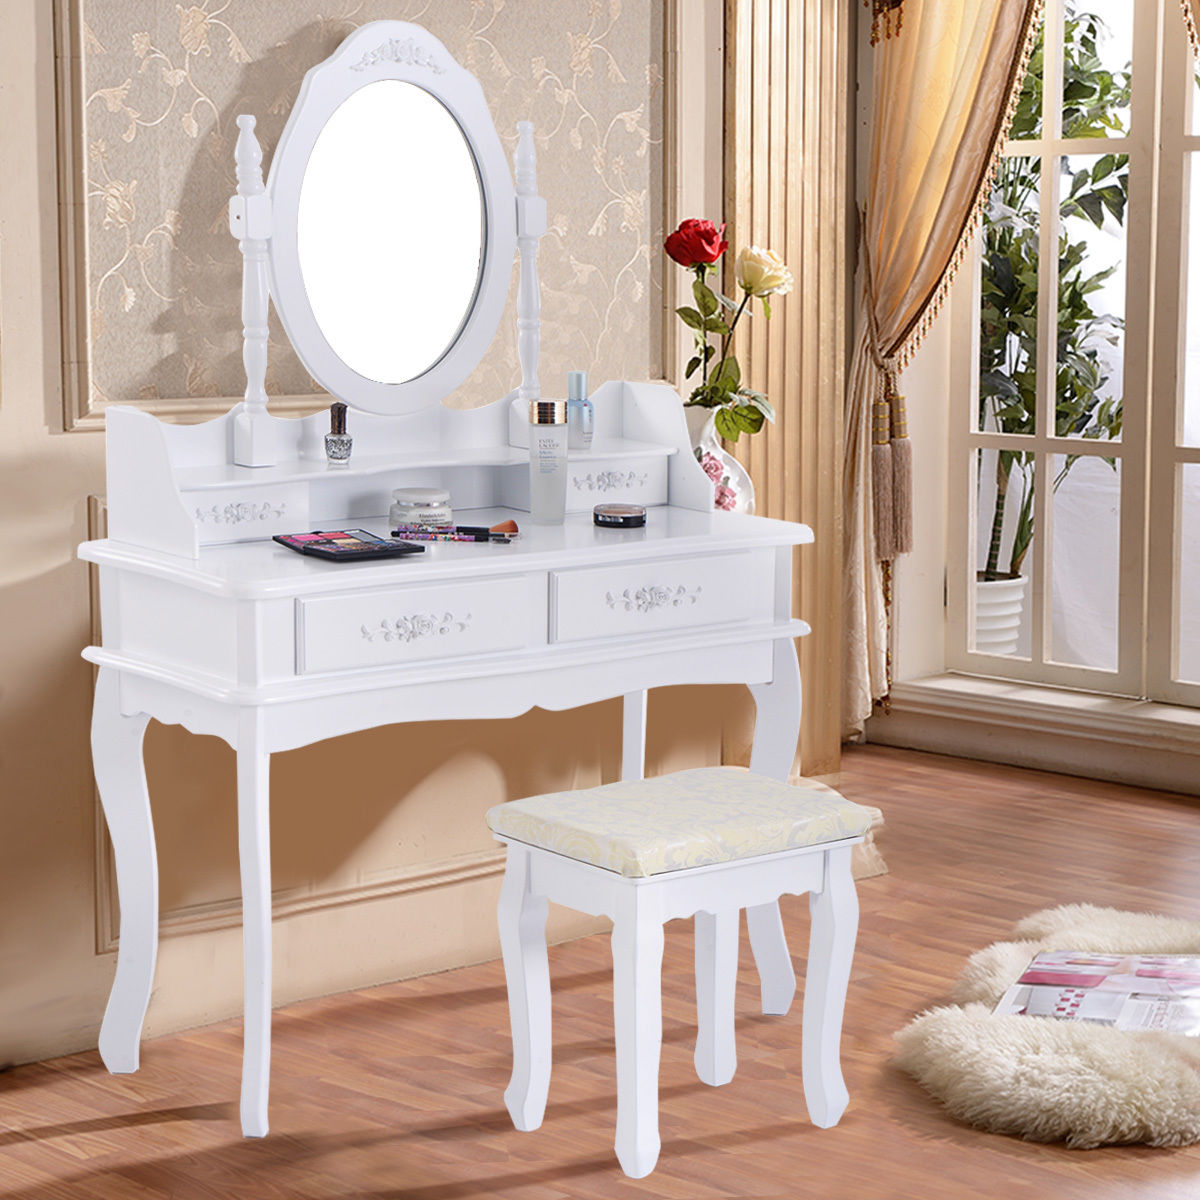 Giantex White Vanity Table Jewelry Makeup Dressing Table Set with Stool and 4 Drawerd Modern Mirror Wood Desk HW58803 giantex wood makeup dressing table stool set jewelry desk drawer mirror black home furniture hw52951bk